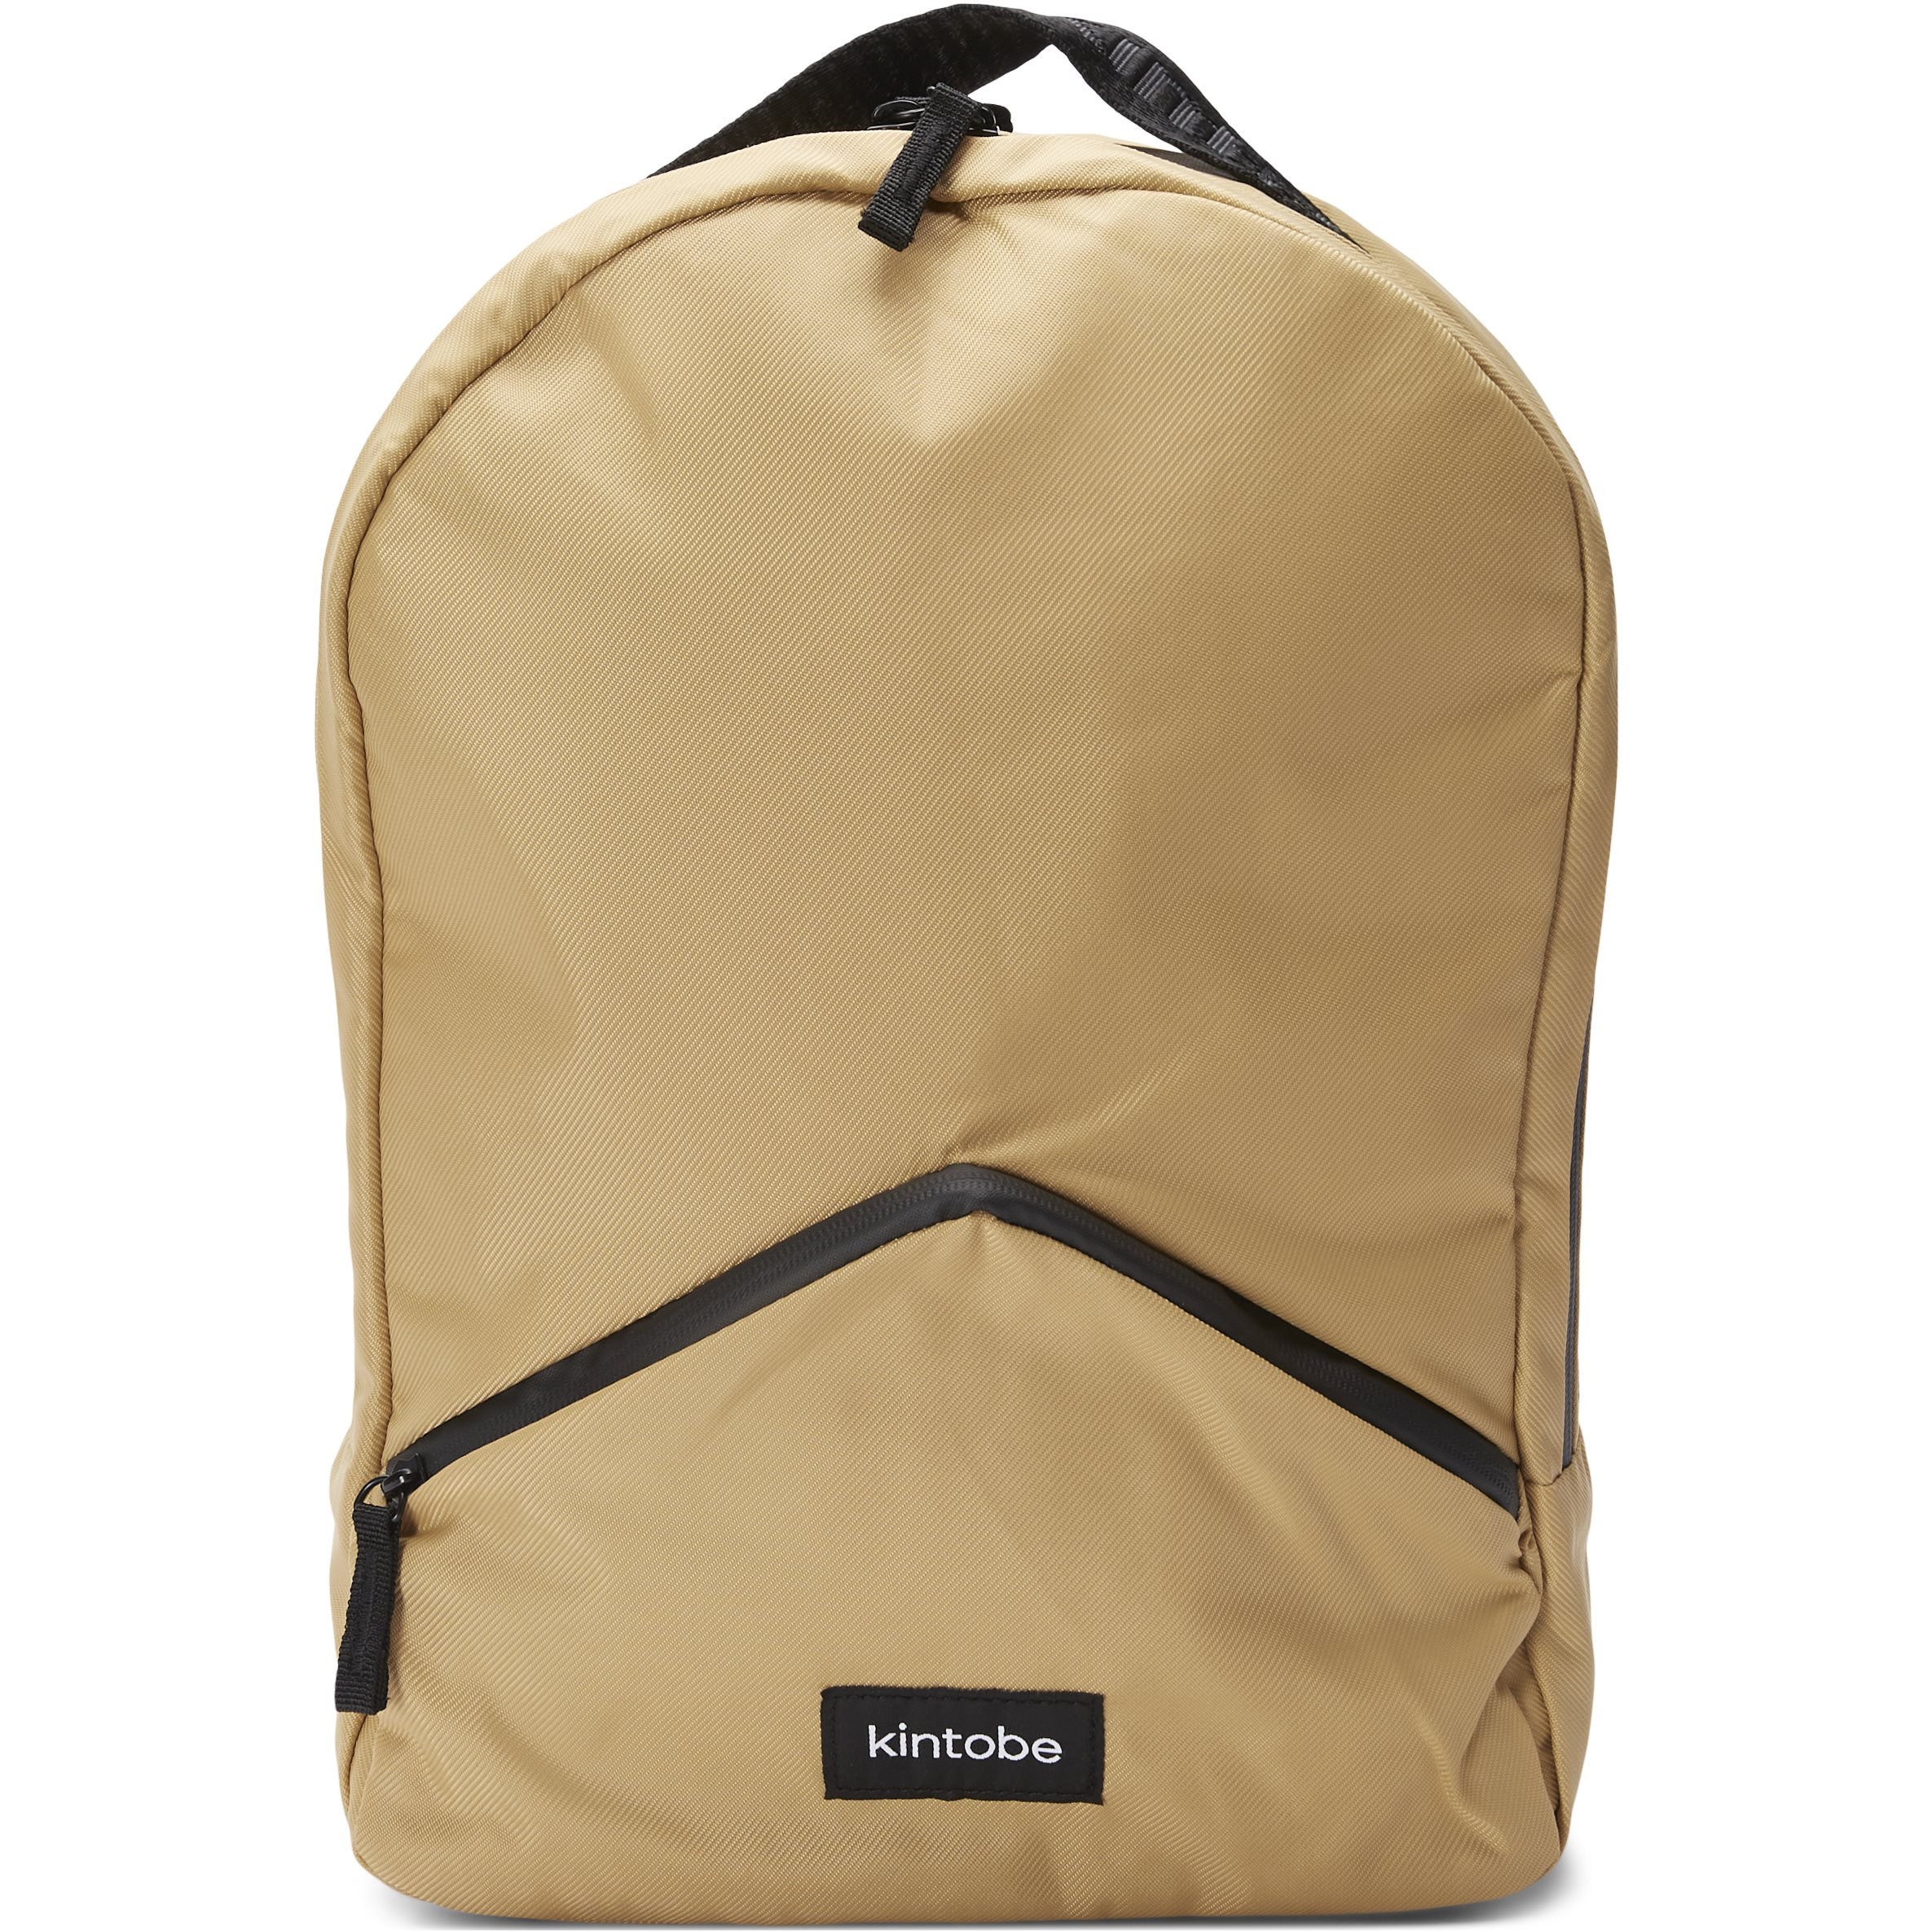 Hugo Backpack - Väskor - Sand